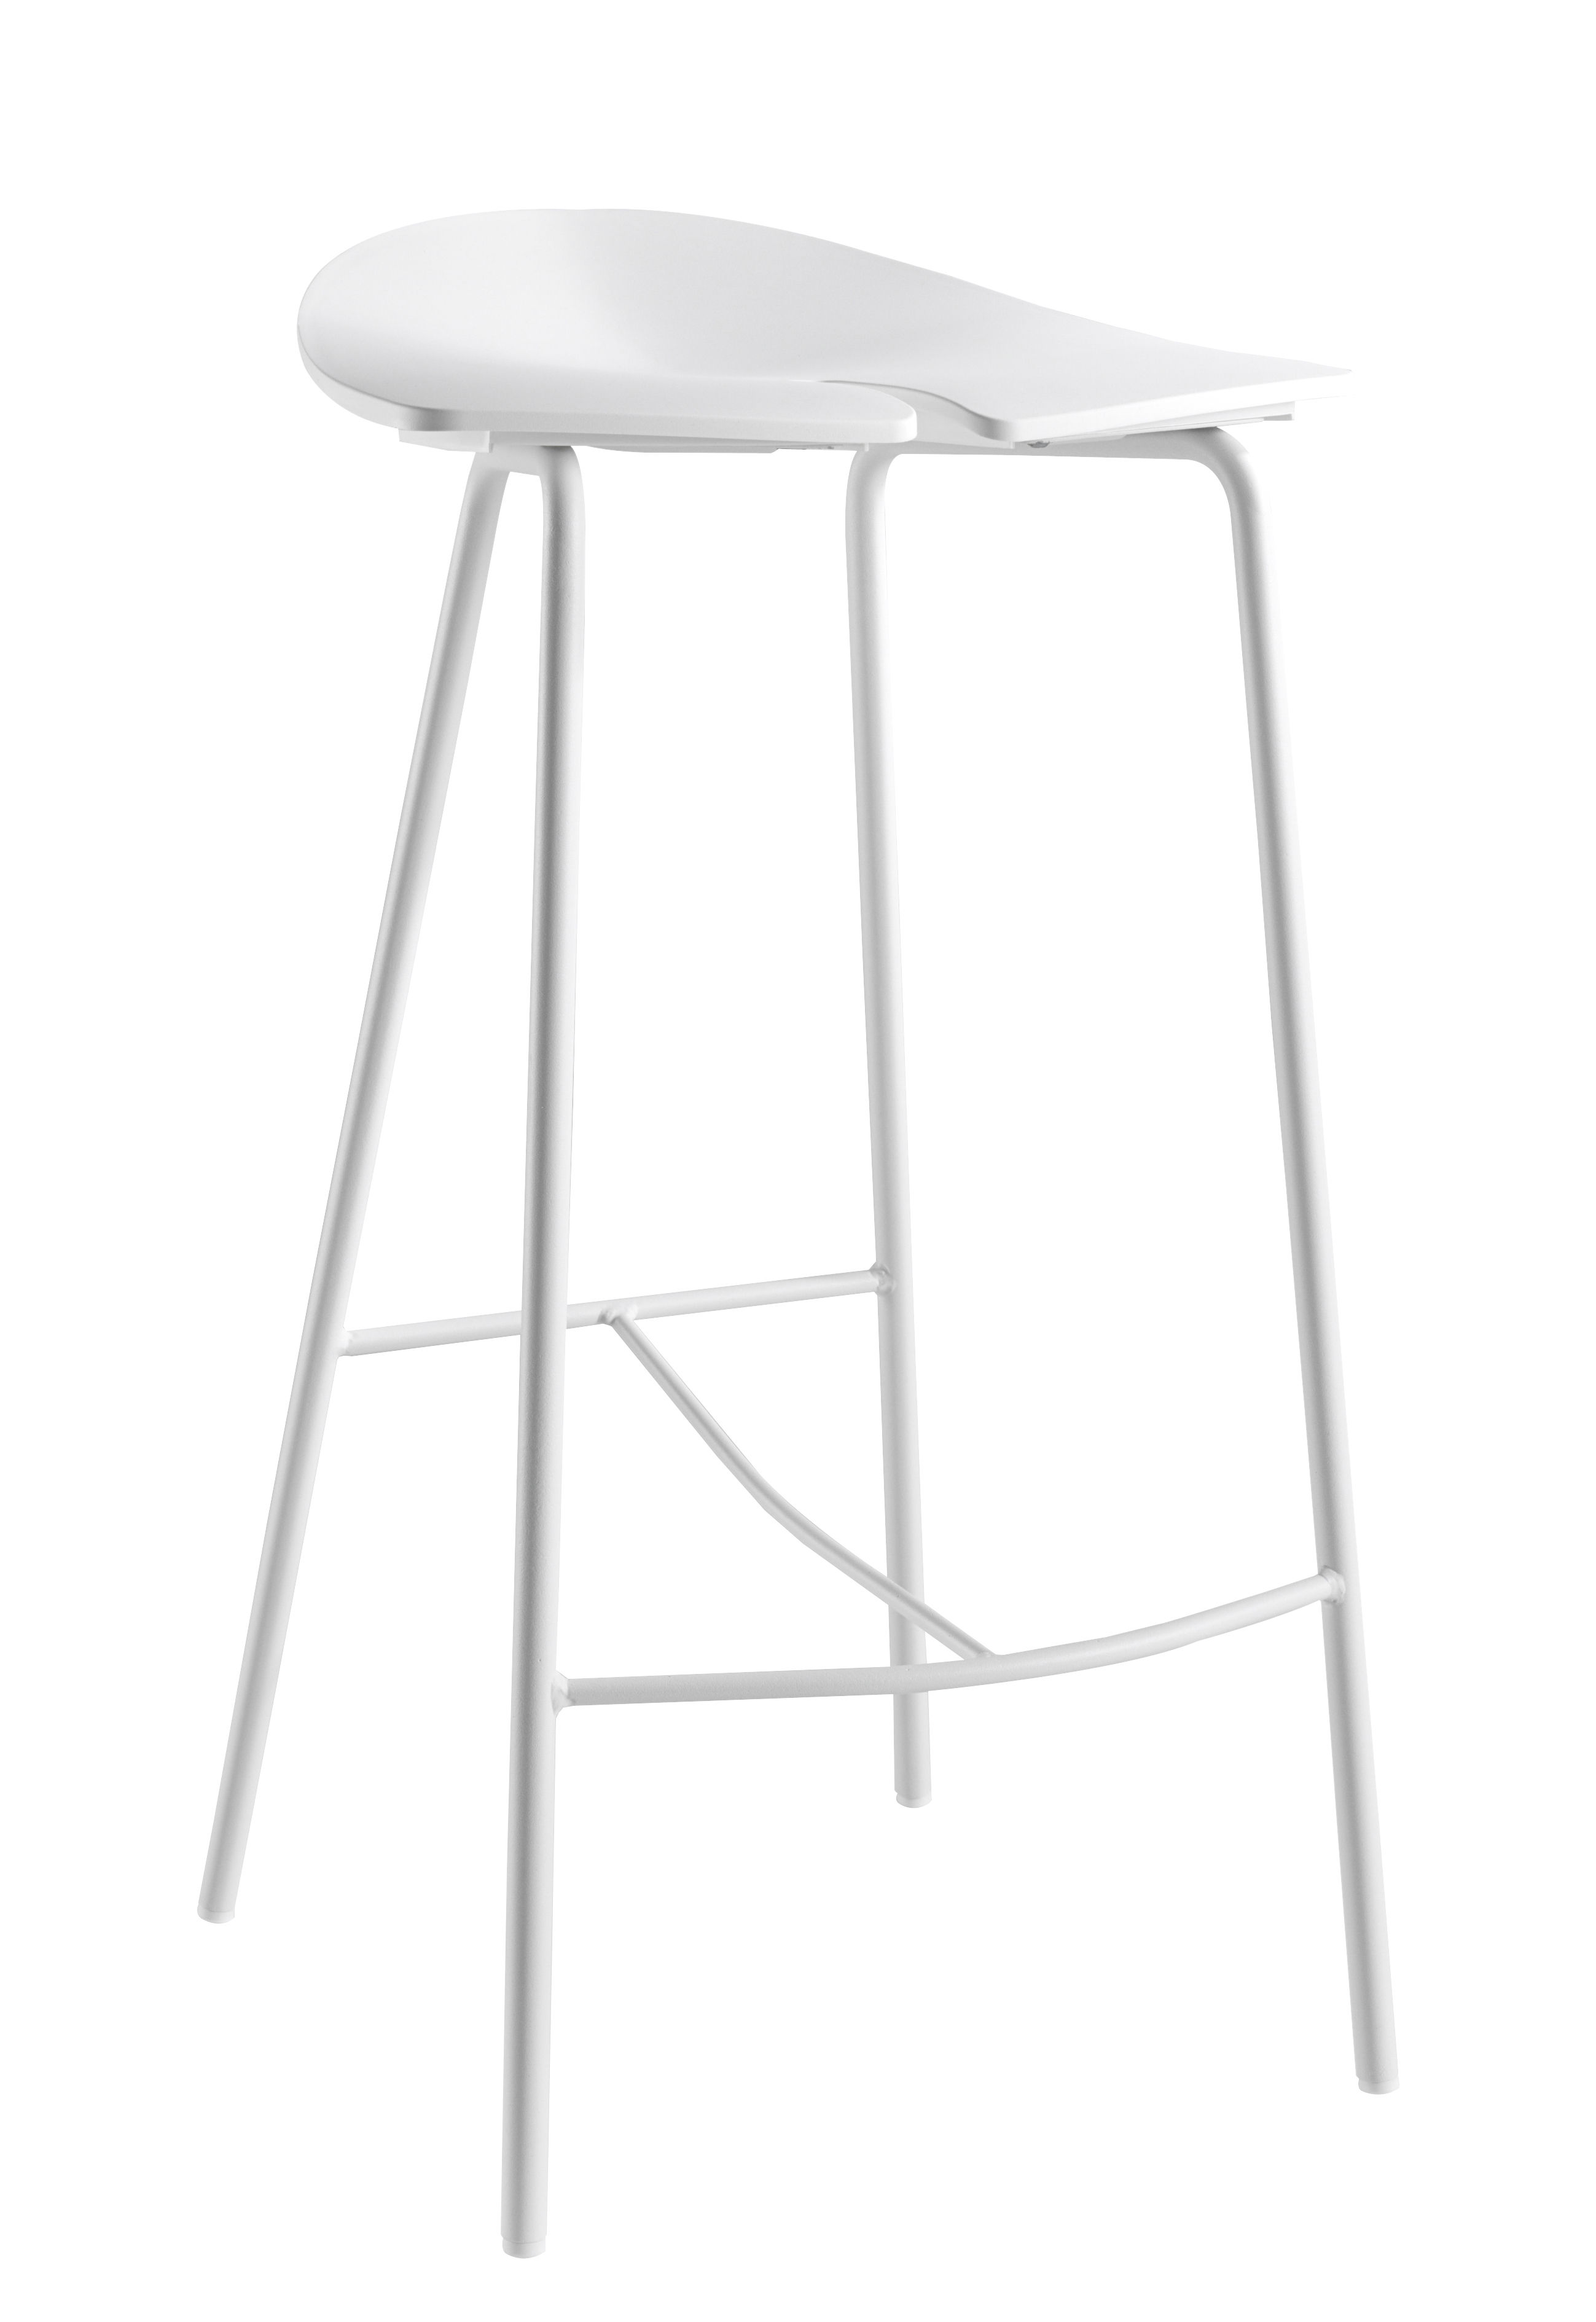 Ant Bar stool H 68 cm Plastic & metal feet White by